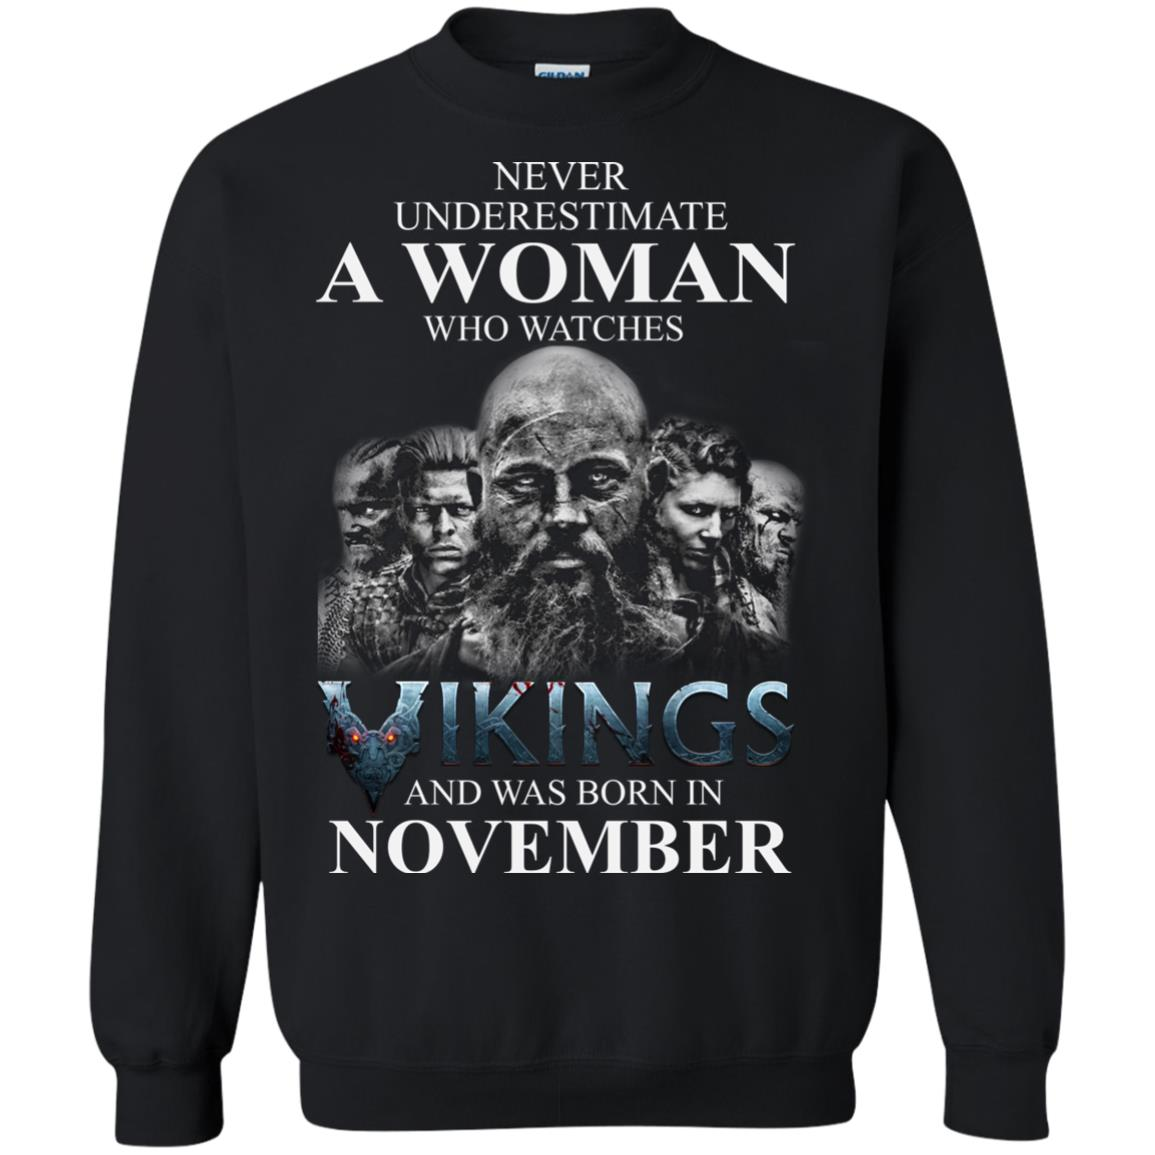 image 1237 - Never Underestimate A woman who watches Vikings and was born in November shirt